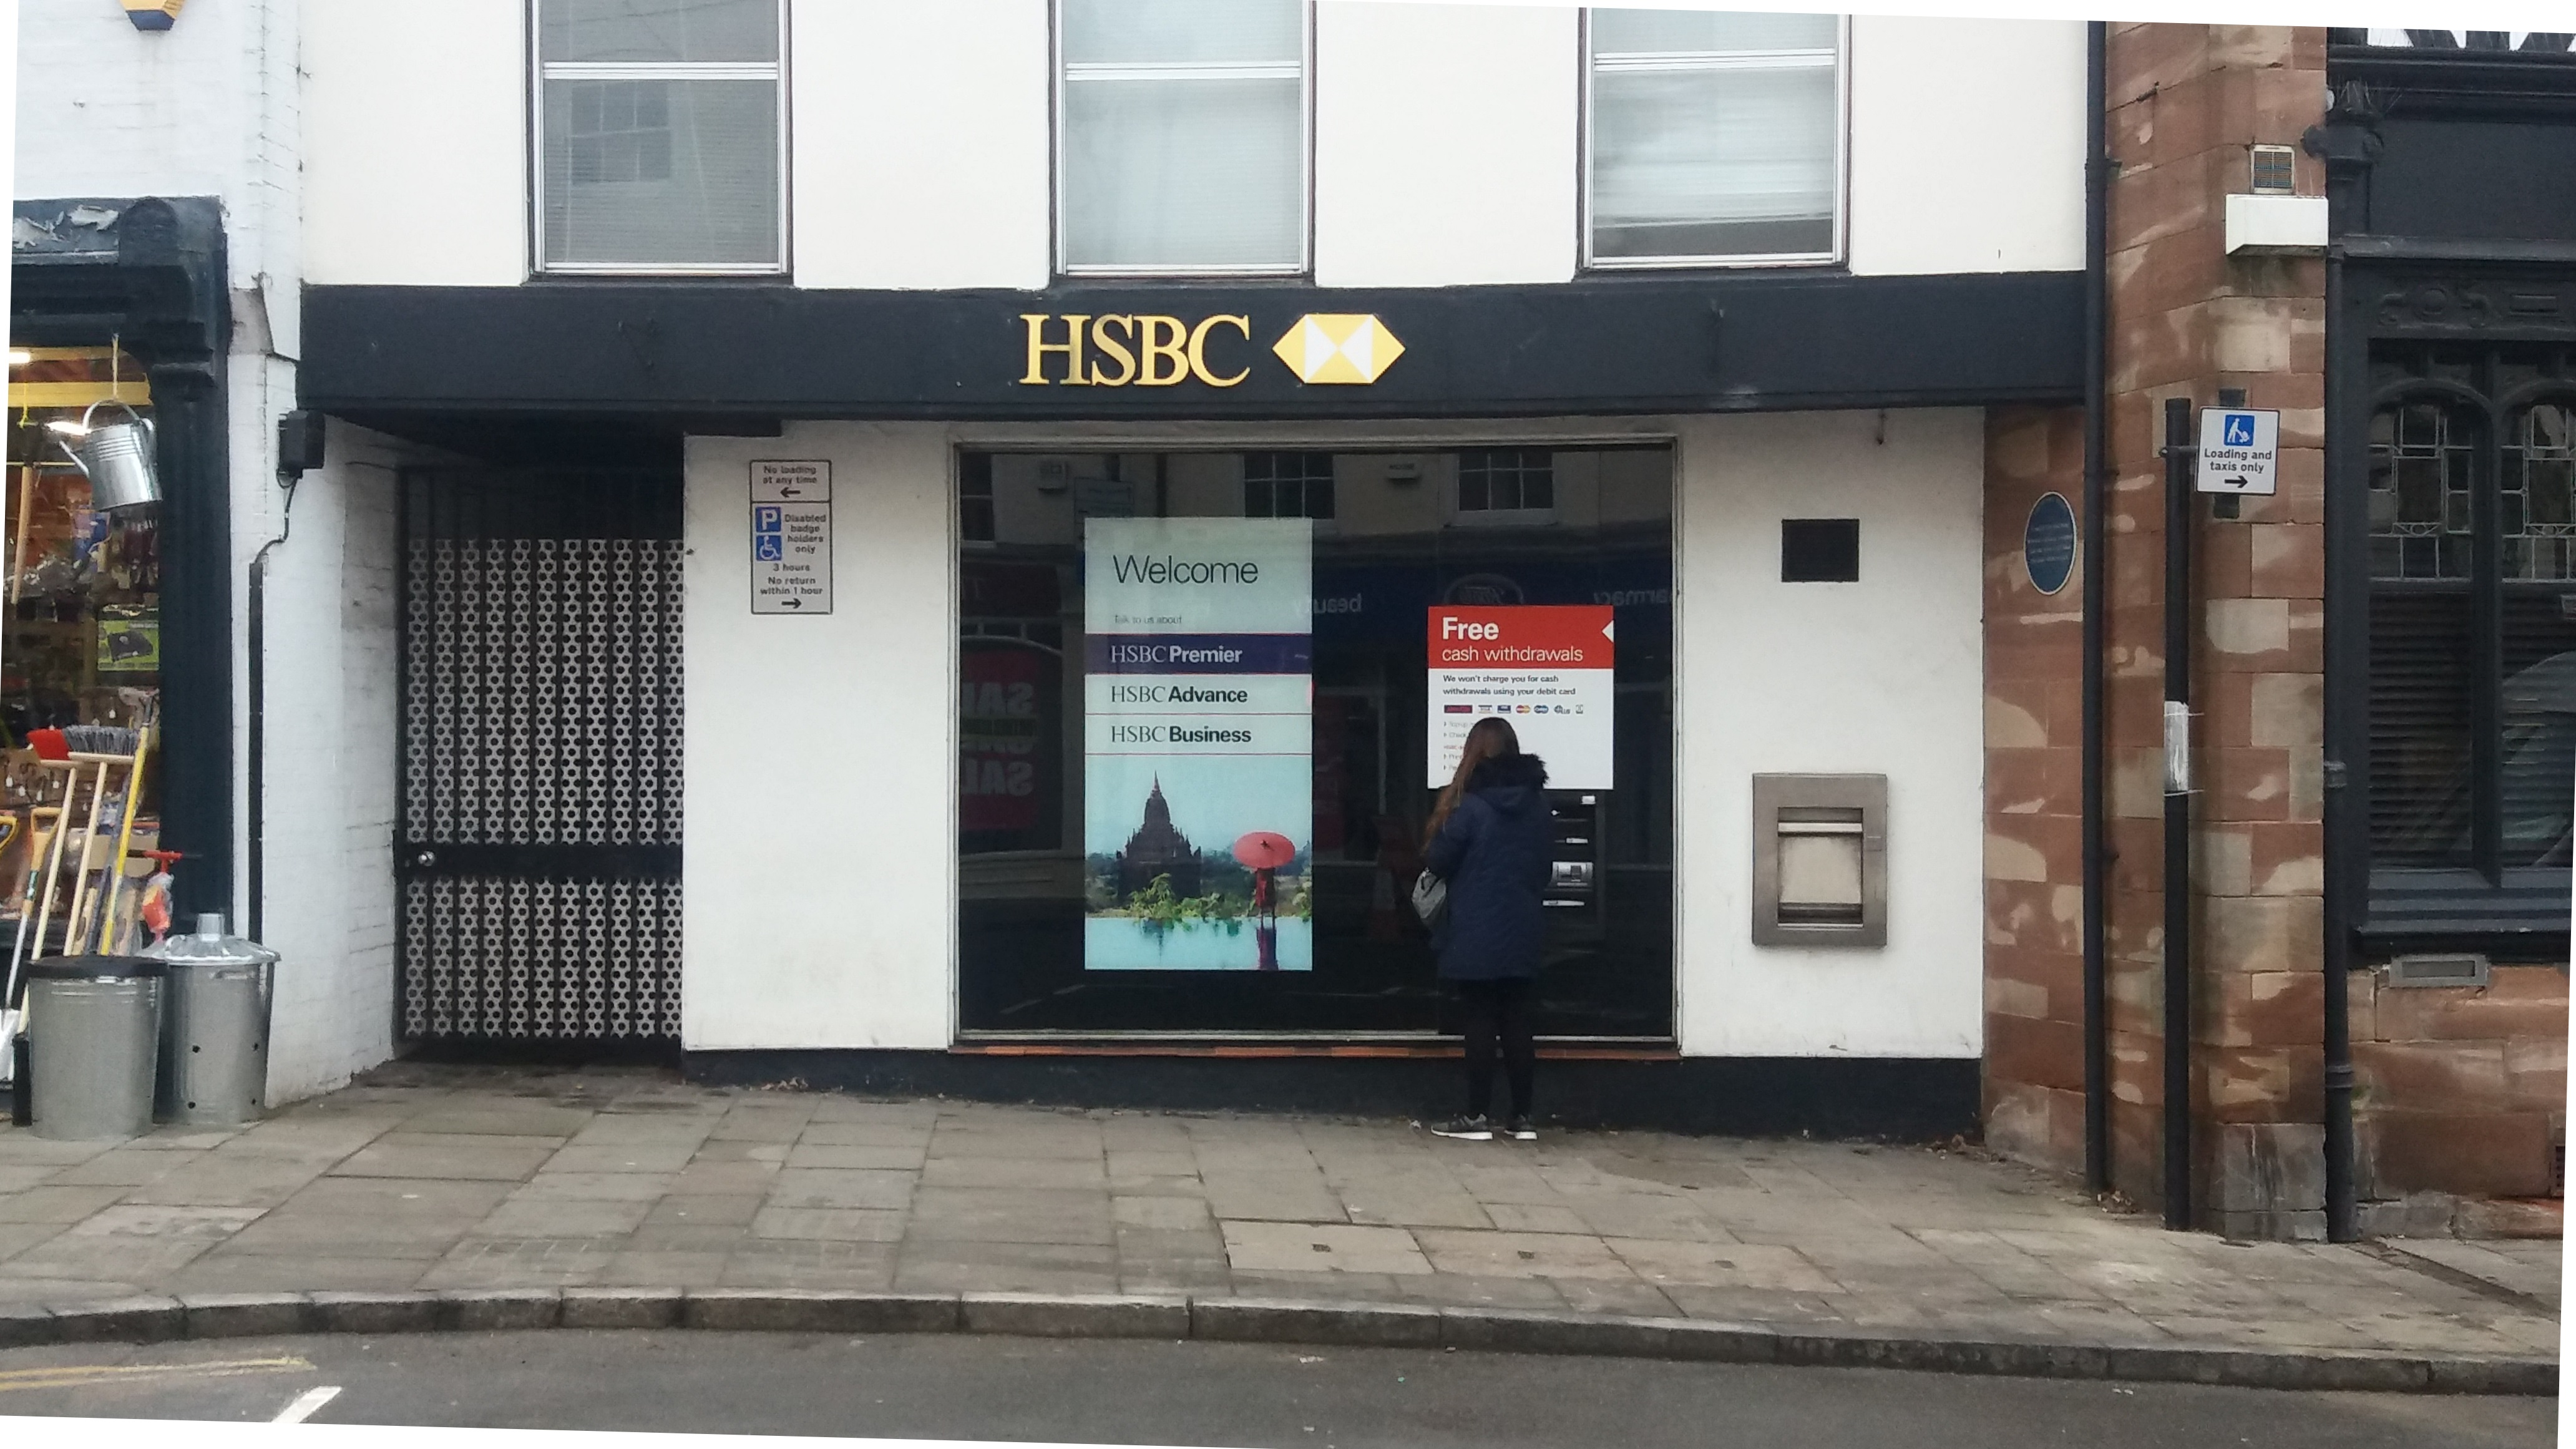 HSBC letter to Shropshire Council on the closure of its Ludlow Branch